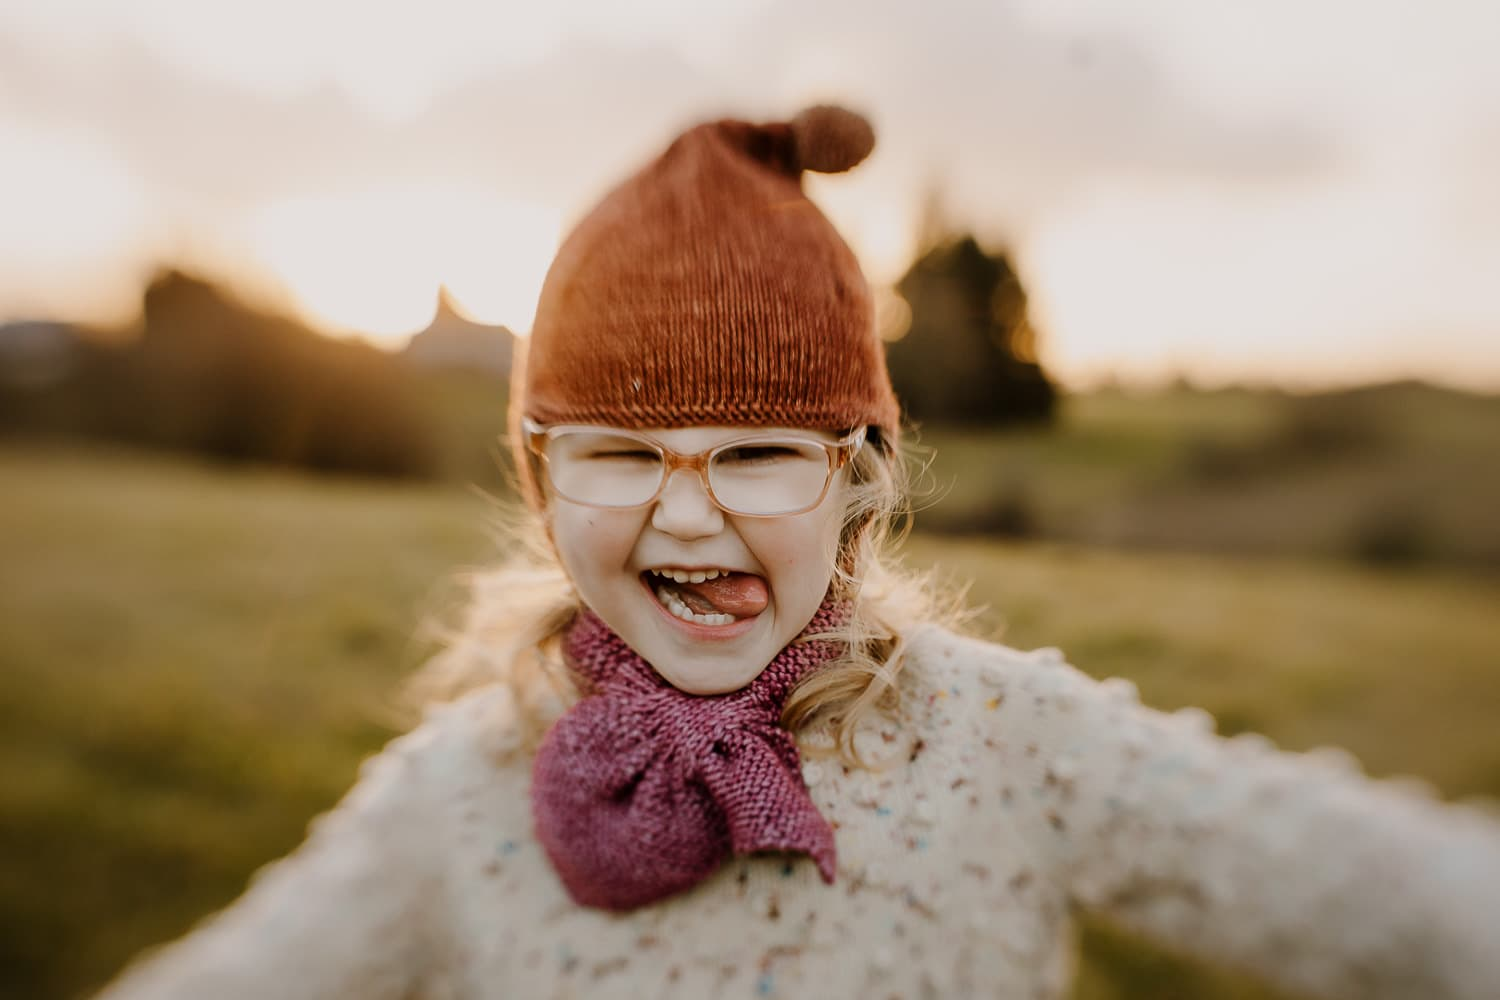 Toddler girl with her tongue sticking out, smiling - family photographer business tools